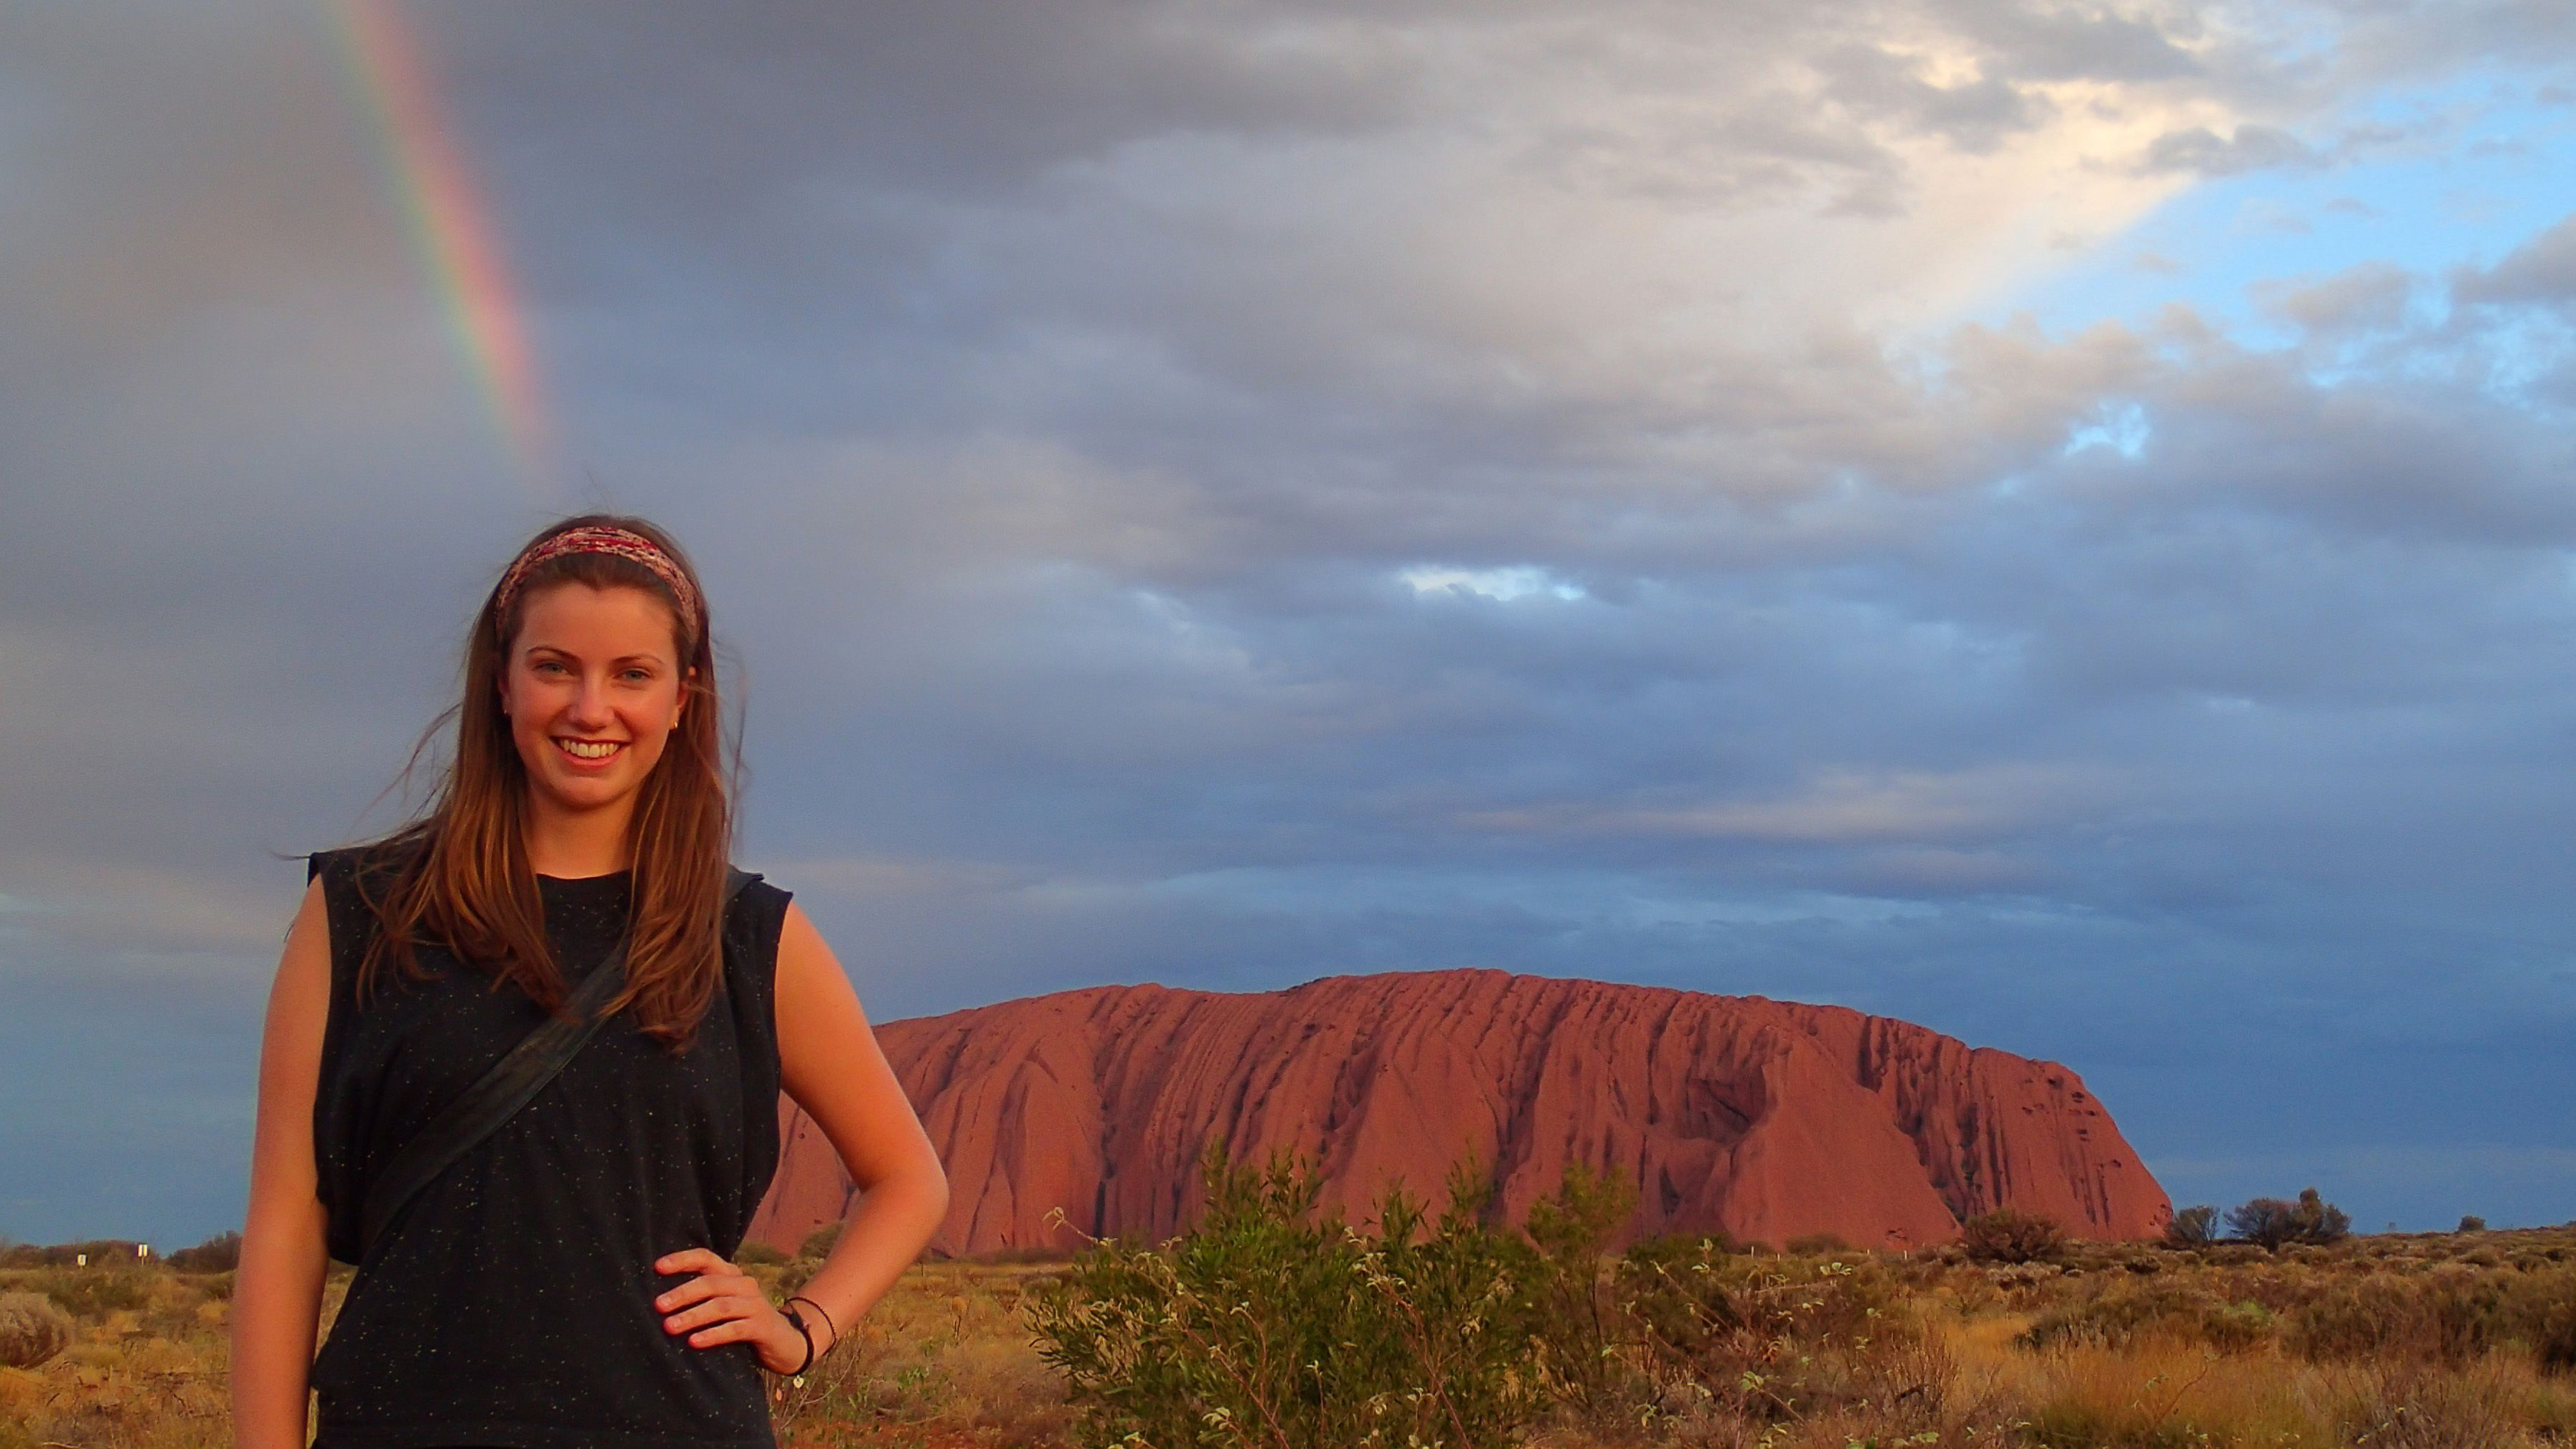 A woman infront of Ayers rock and a rainbow